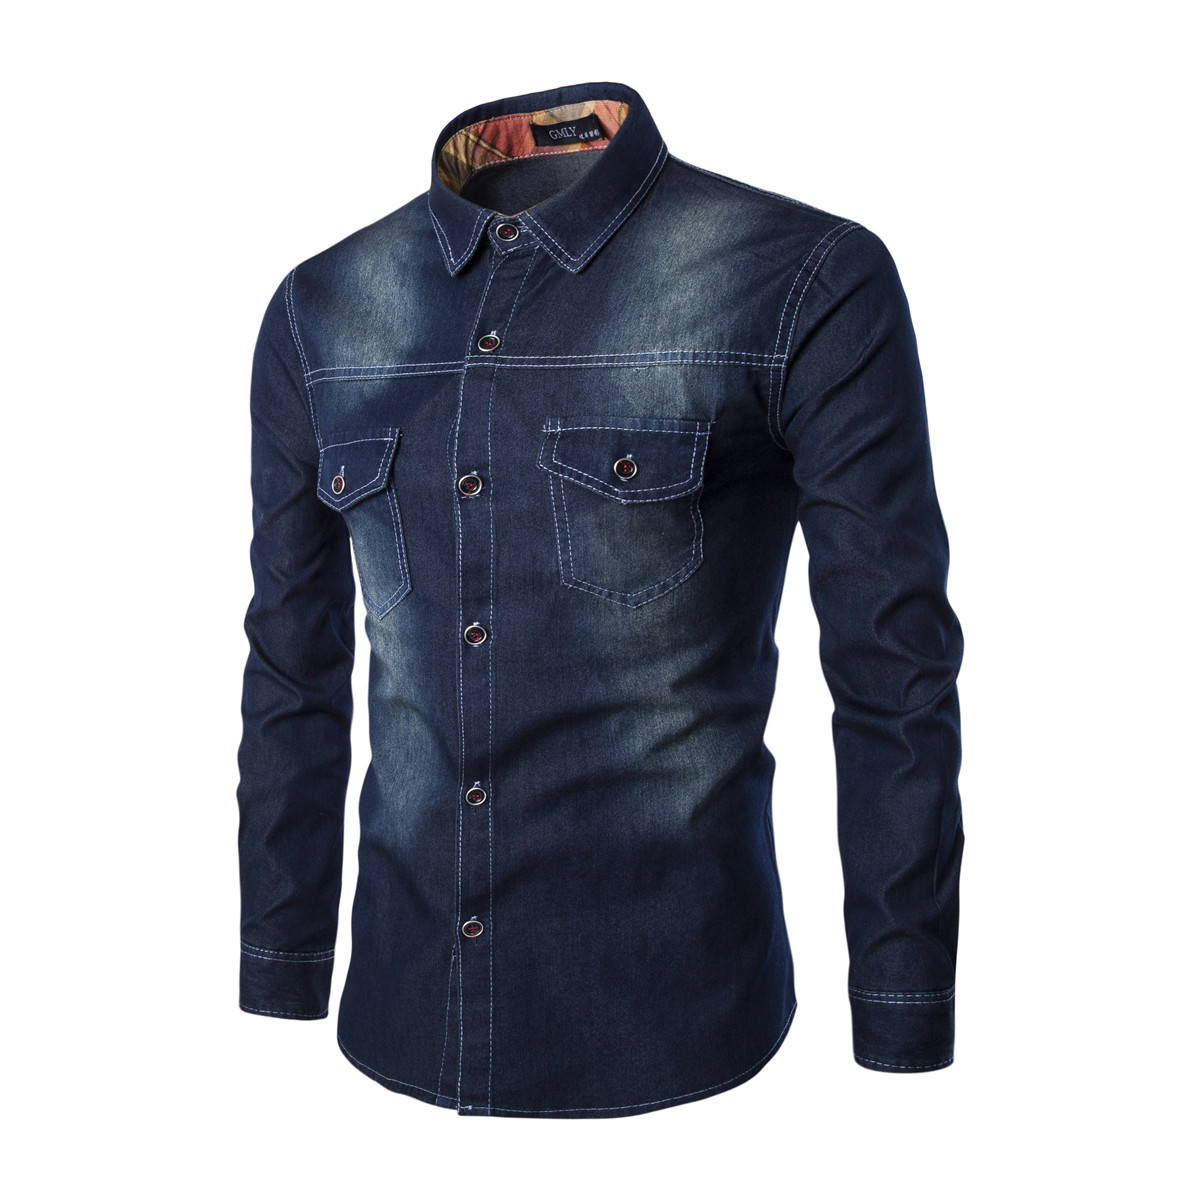 2017 New Men's Denim Shirt 5xl 6xl Mens Shirts Denim Shirt for Men Slim Fit Shirt with Two Pockets C993